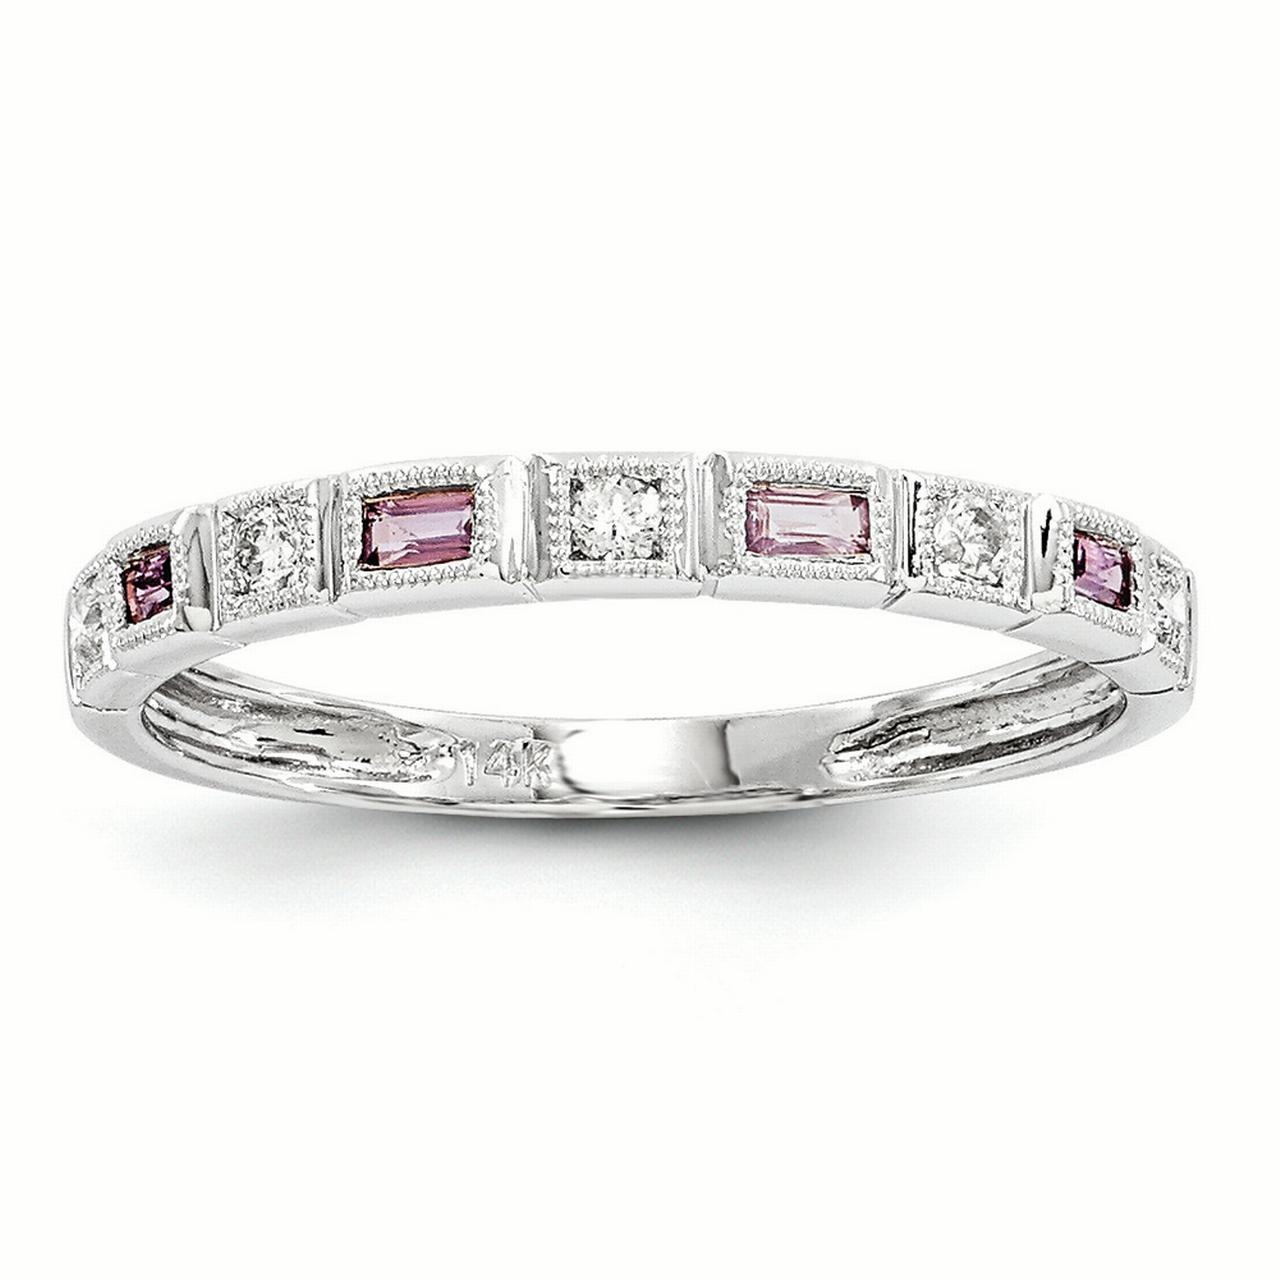 14k White Gold White Gold Diamond & Pink Sapphire Ring Band Ring Y6548SP A by